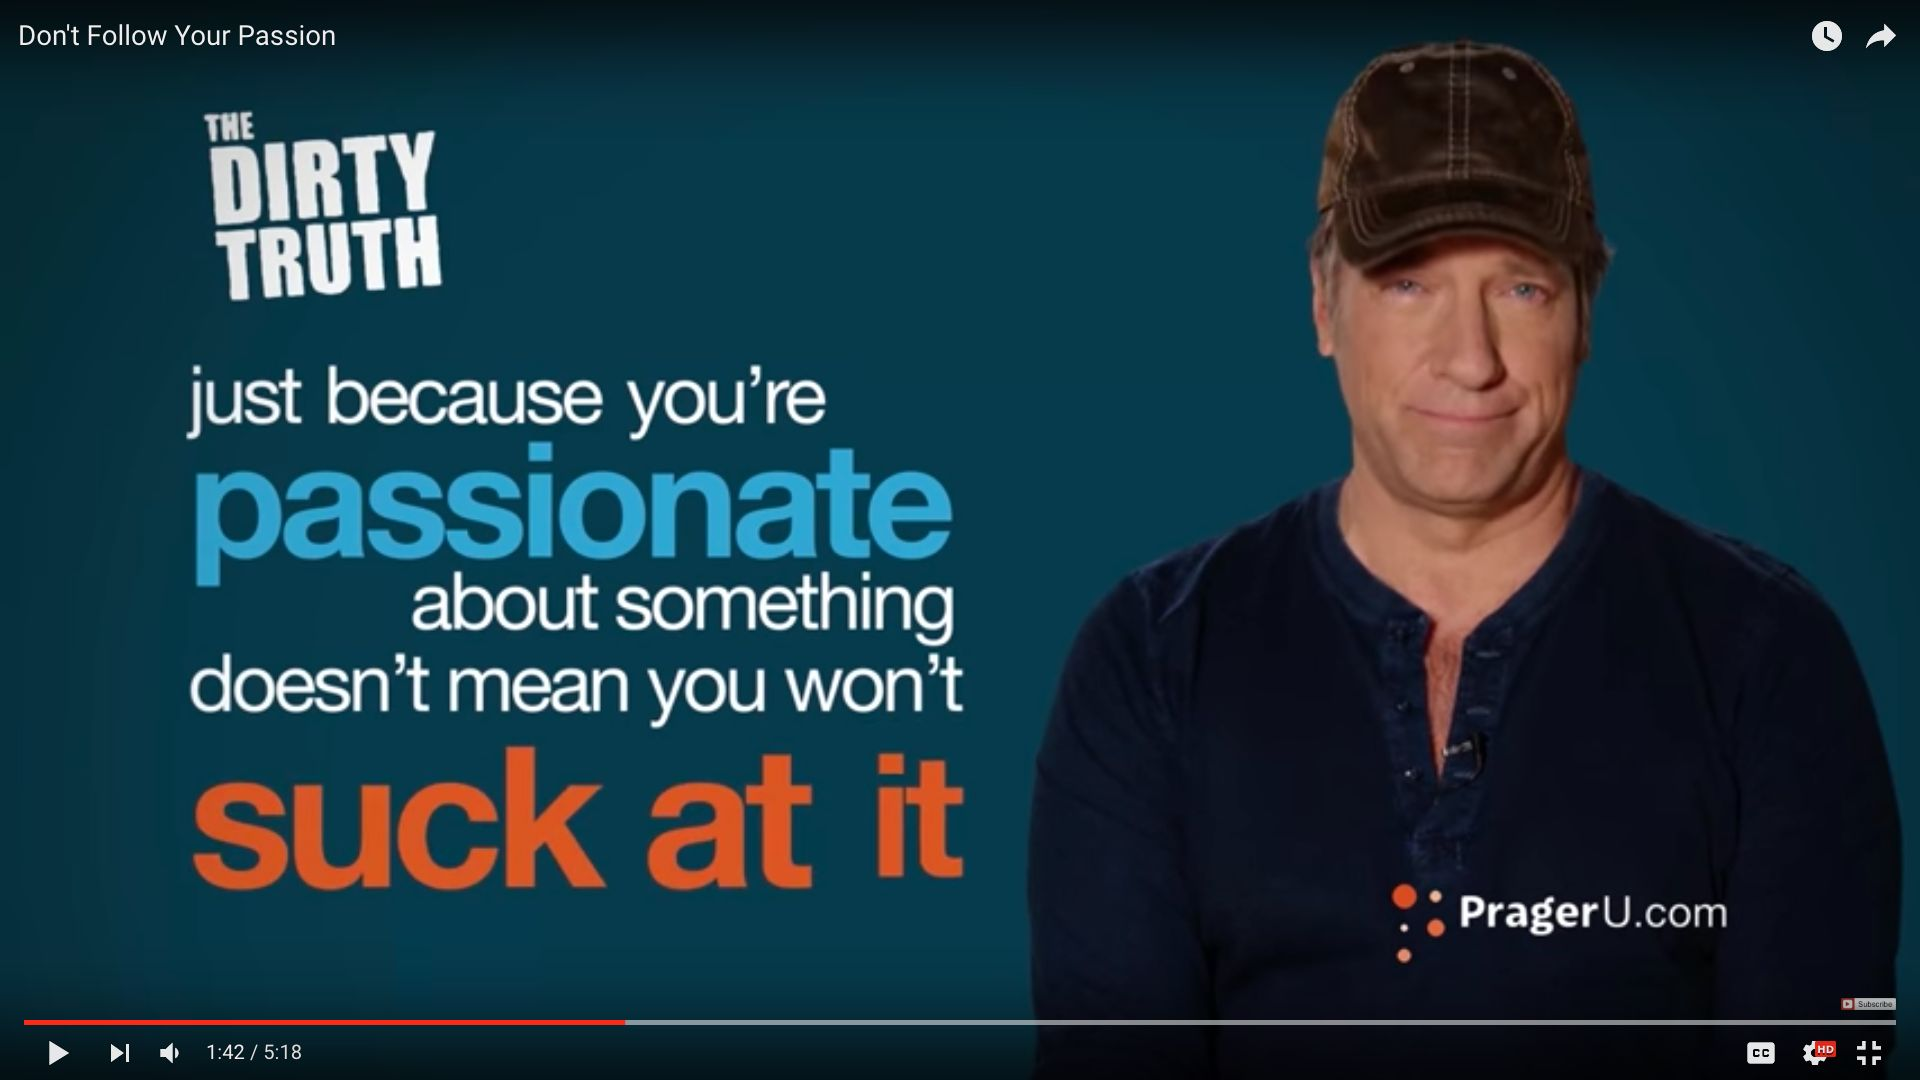 """""""Dirty Jobs"""" star Mike Rowe delivered some colorful advice to recent college graduates on following their passion"""